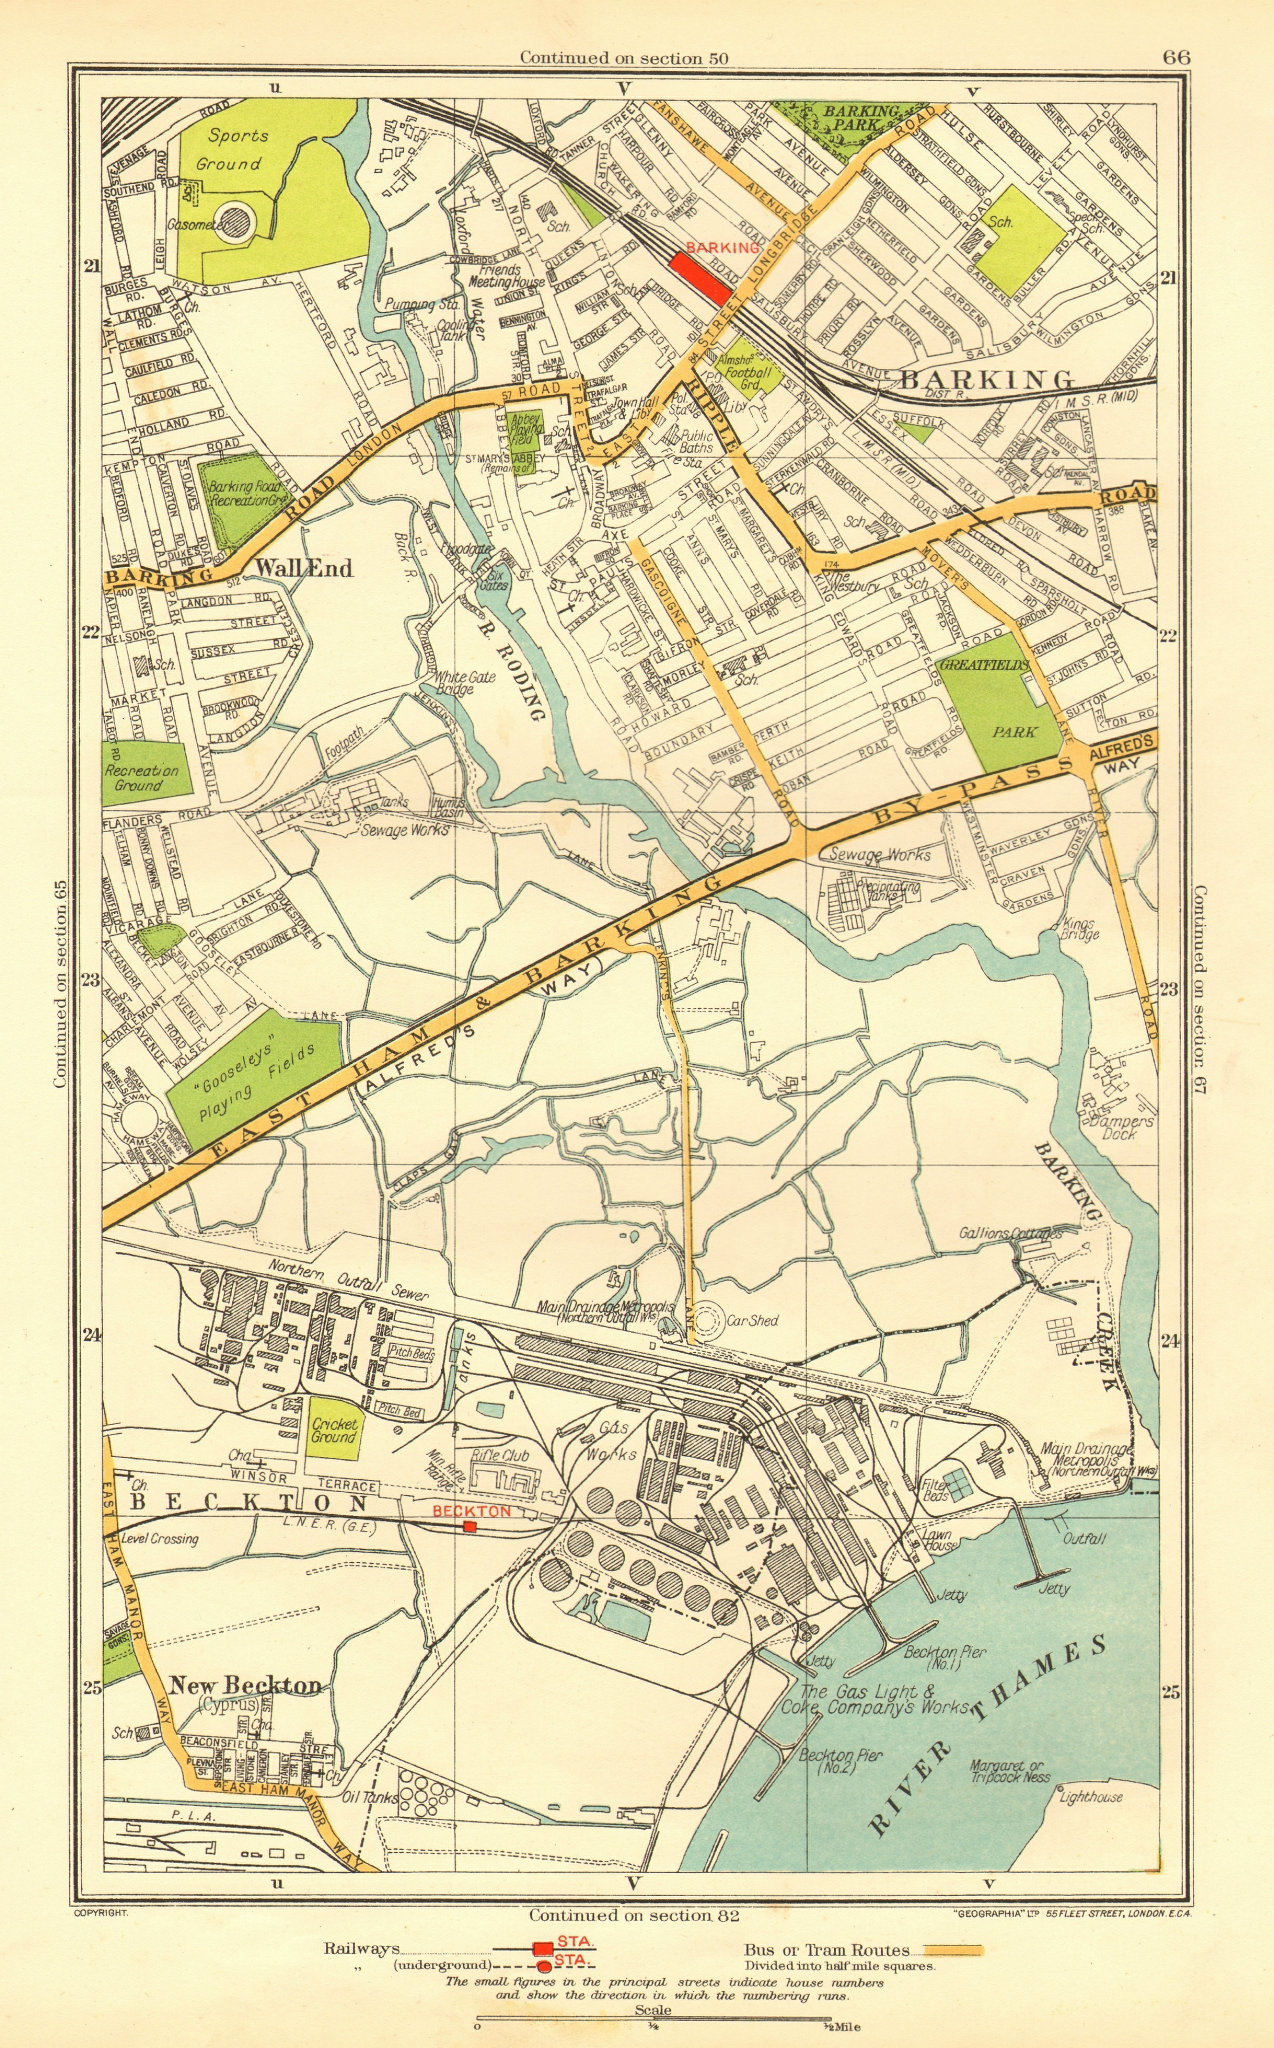 Associate Product LONDON. Barking Beckton Cyprus New Beckton Wall End 1937 old vintage map chart